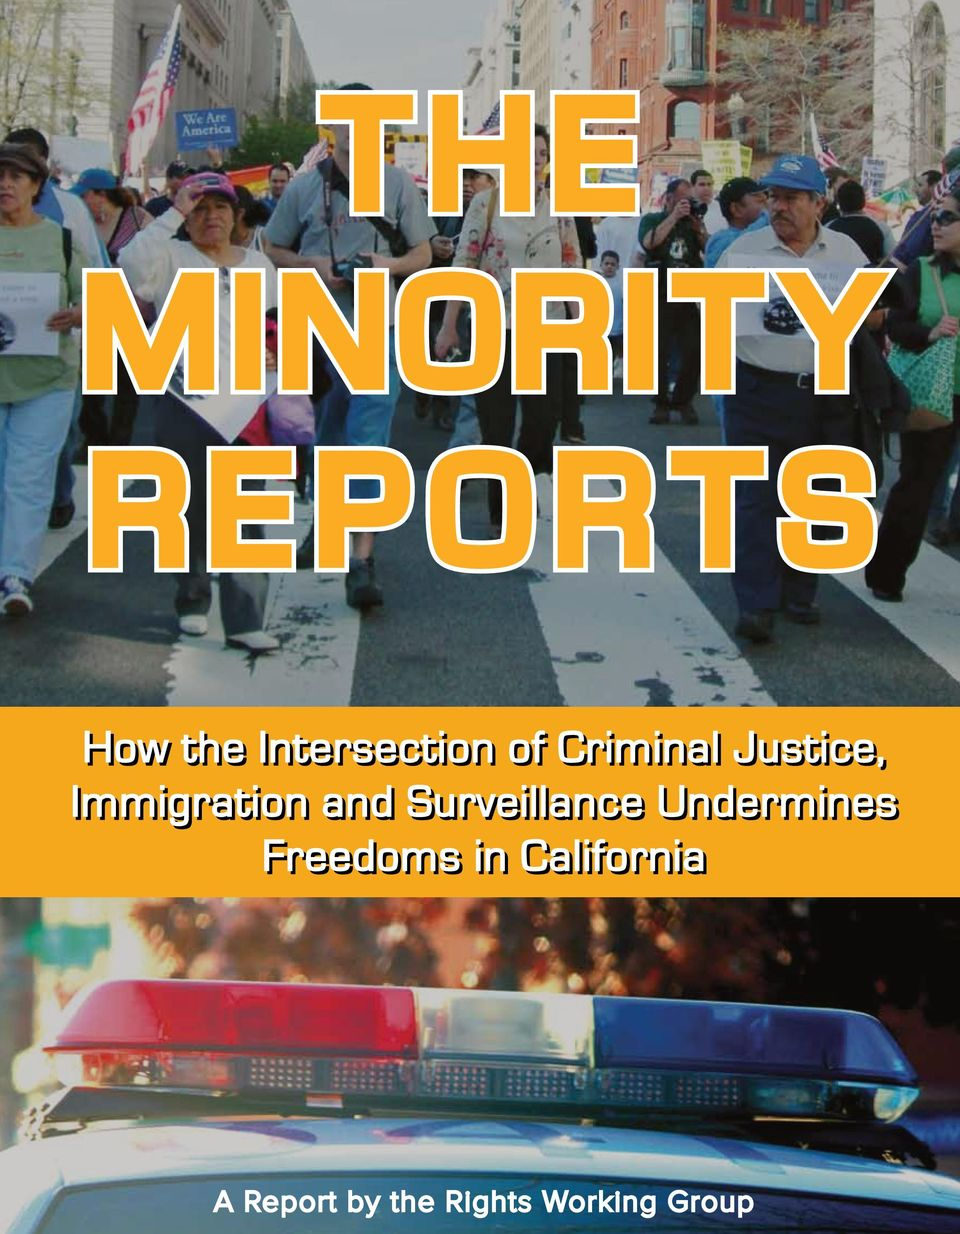 Undermines Freedoms in California A Report by